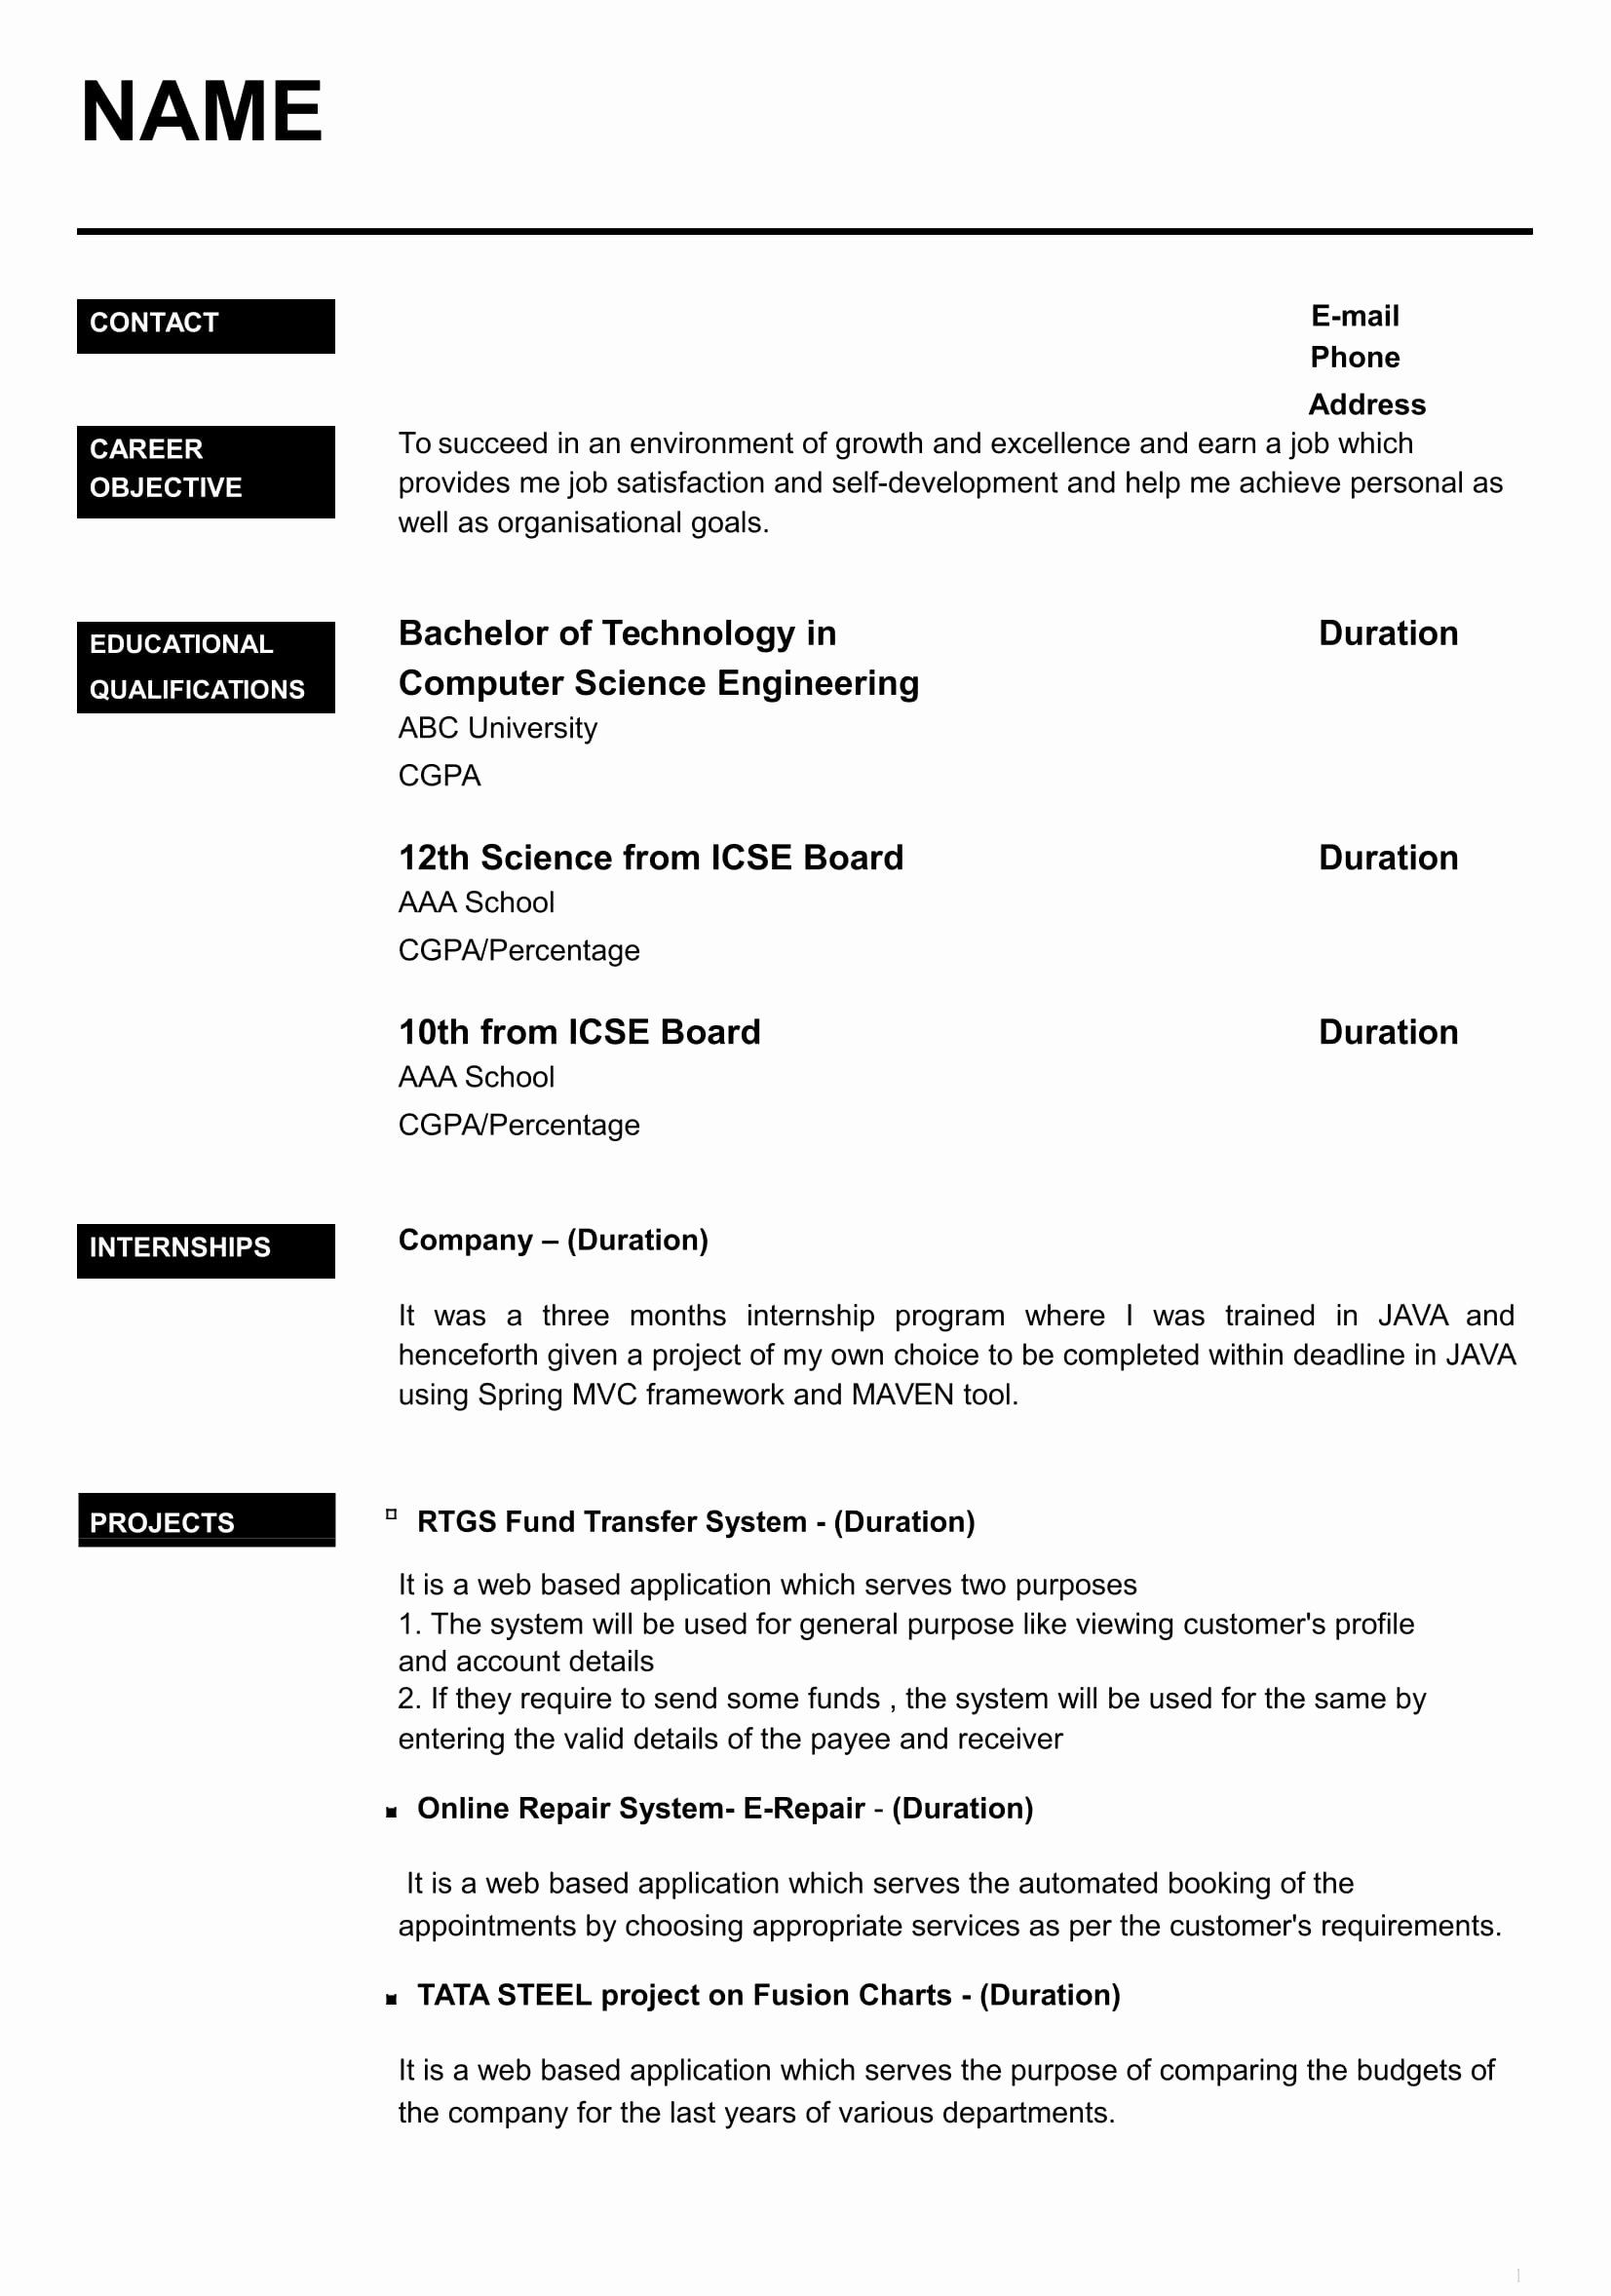 Resume Format For Freshers In Word